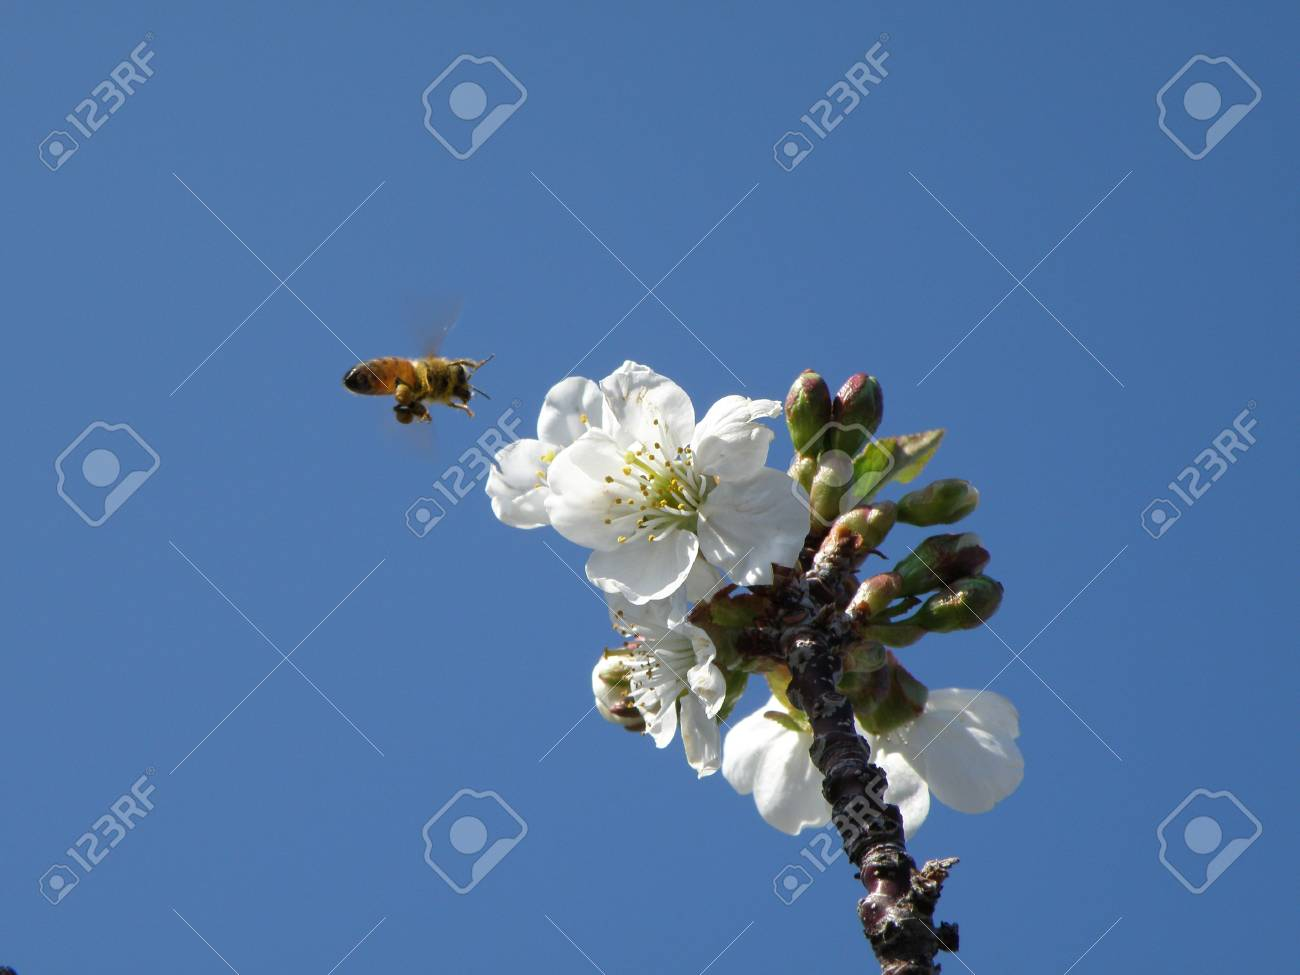 Honey bee preparing to land on a sour cherry blossom. Stock Photo - 4859175